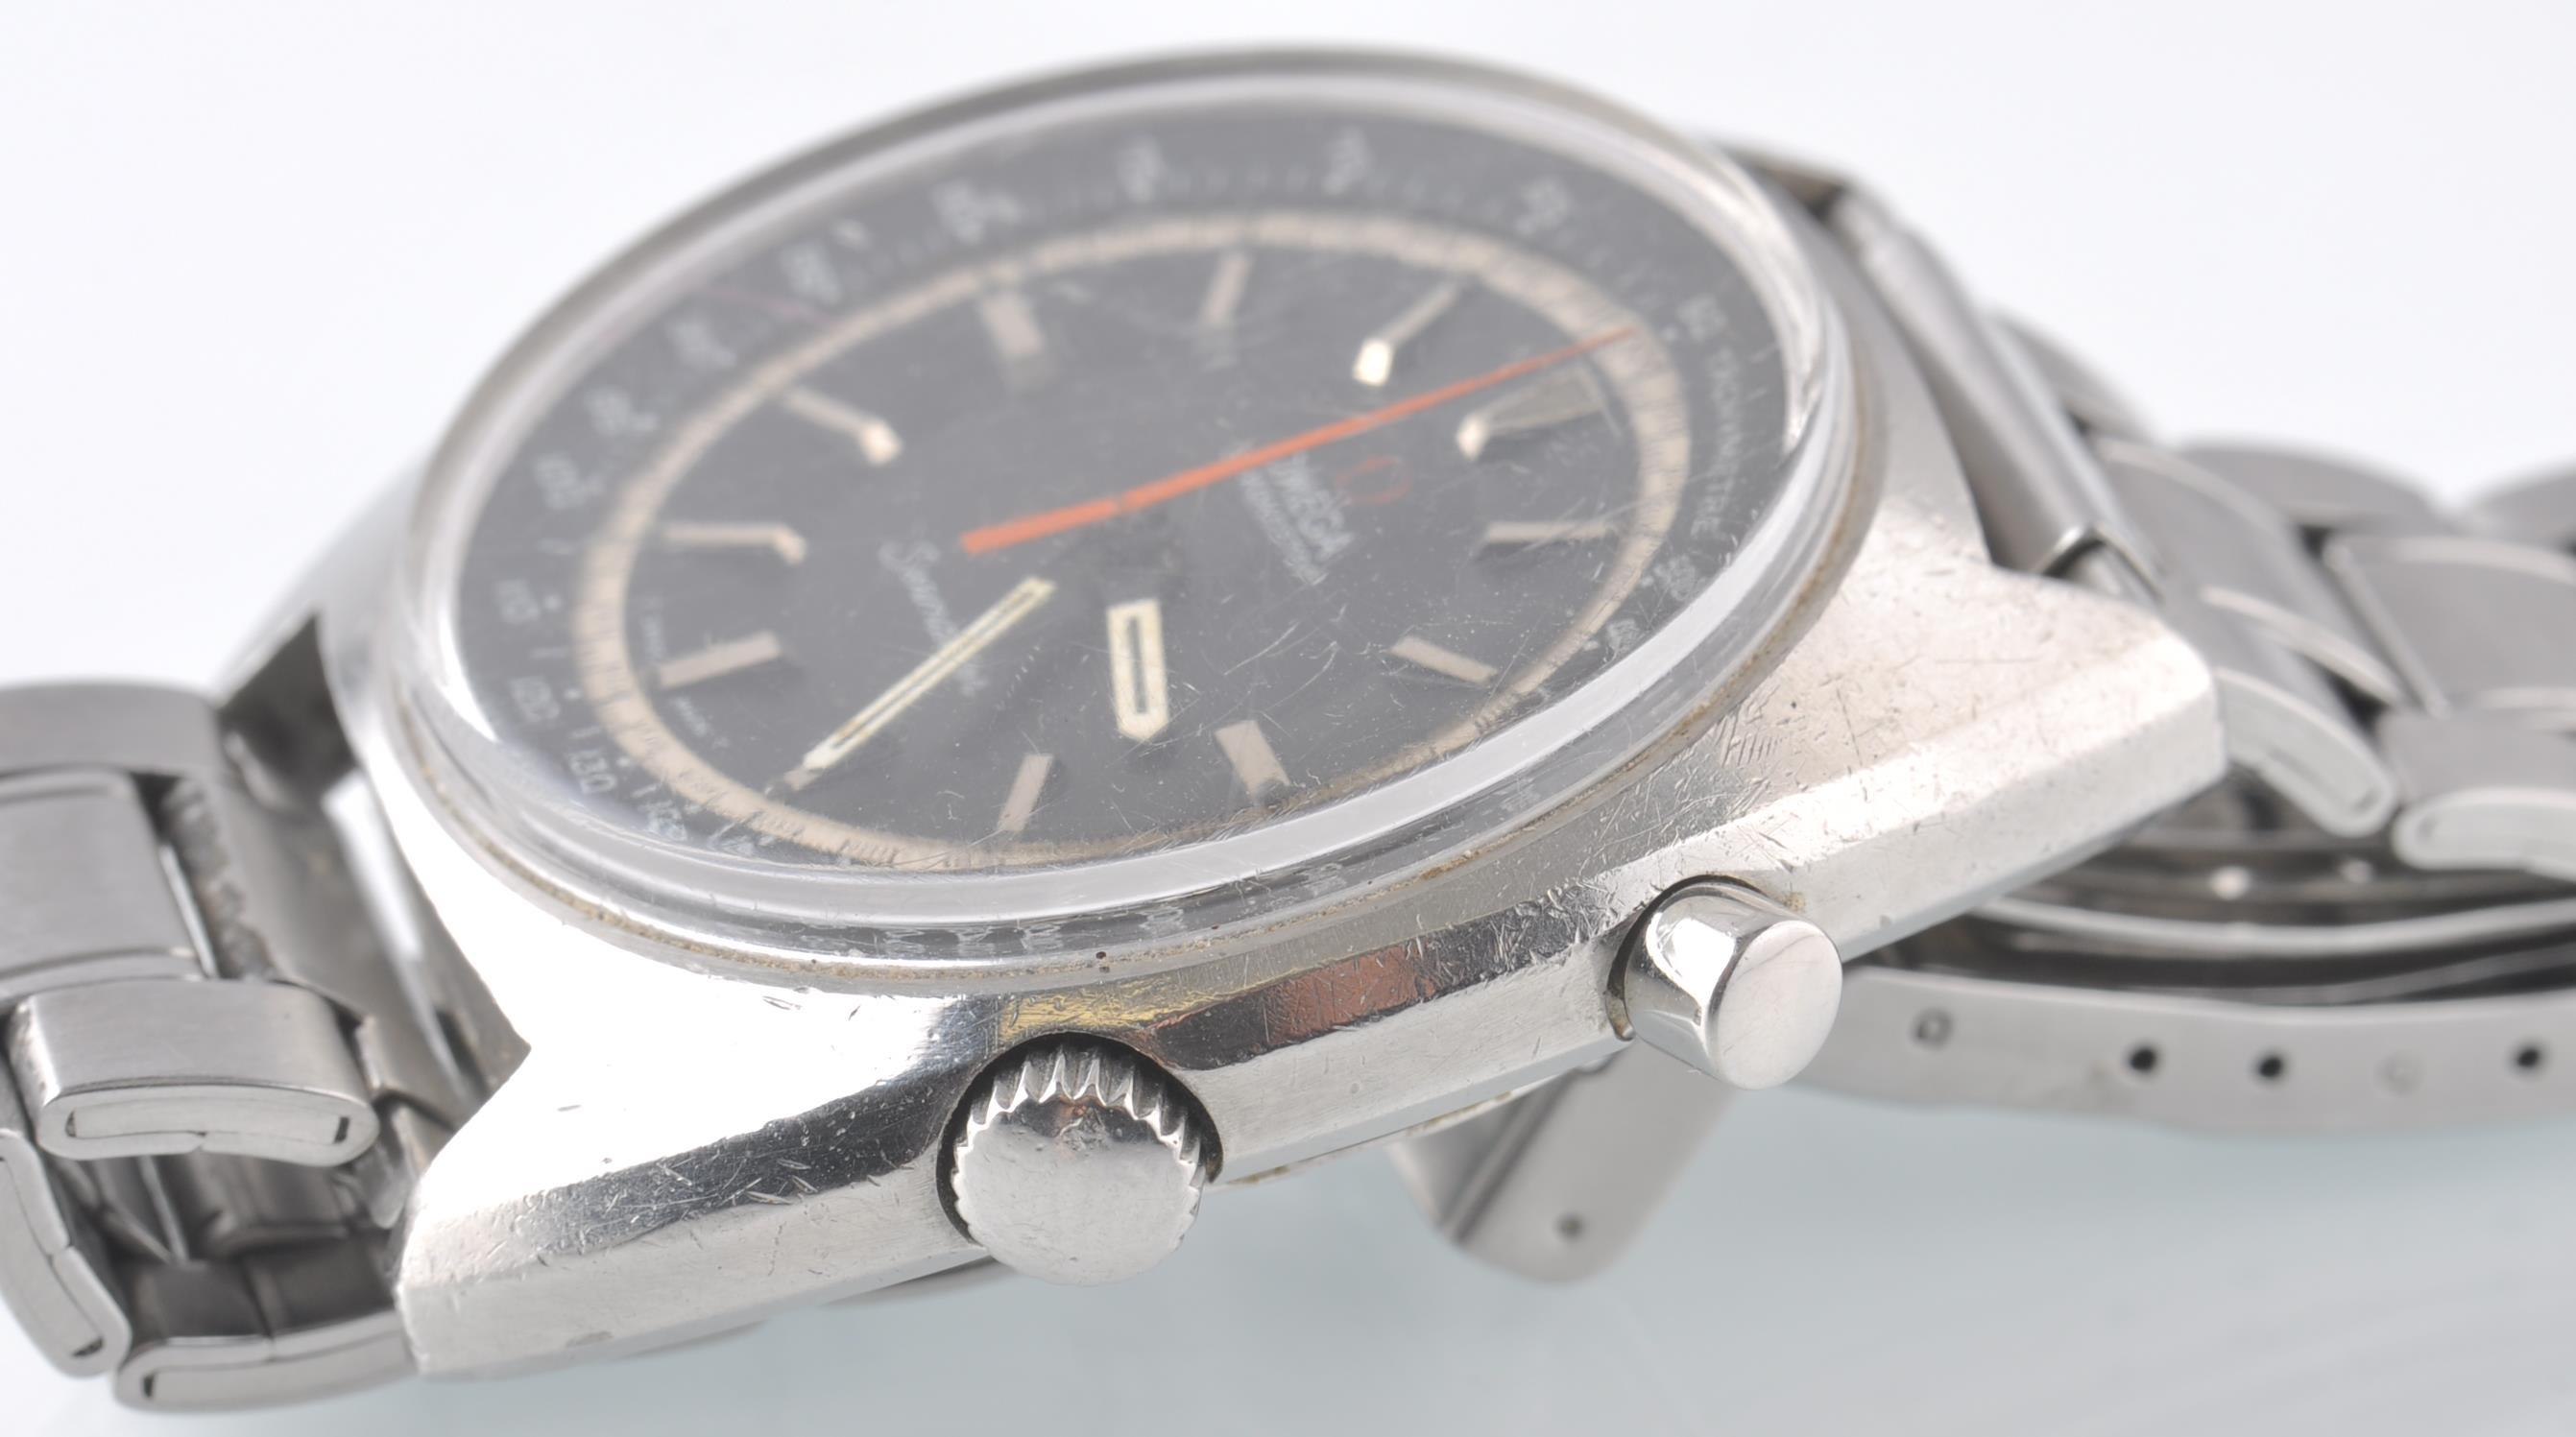 OMEGA SEAMASTER CHRONOSTOP BLACK FACED DIAL - Image 2 of 5